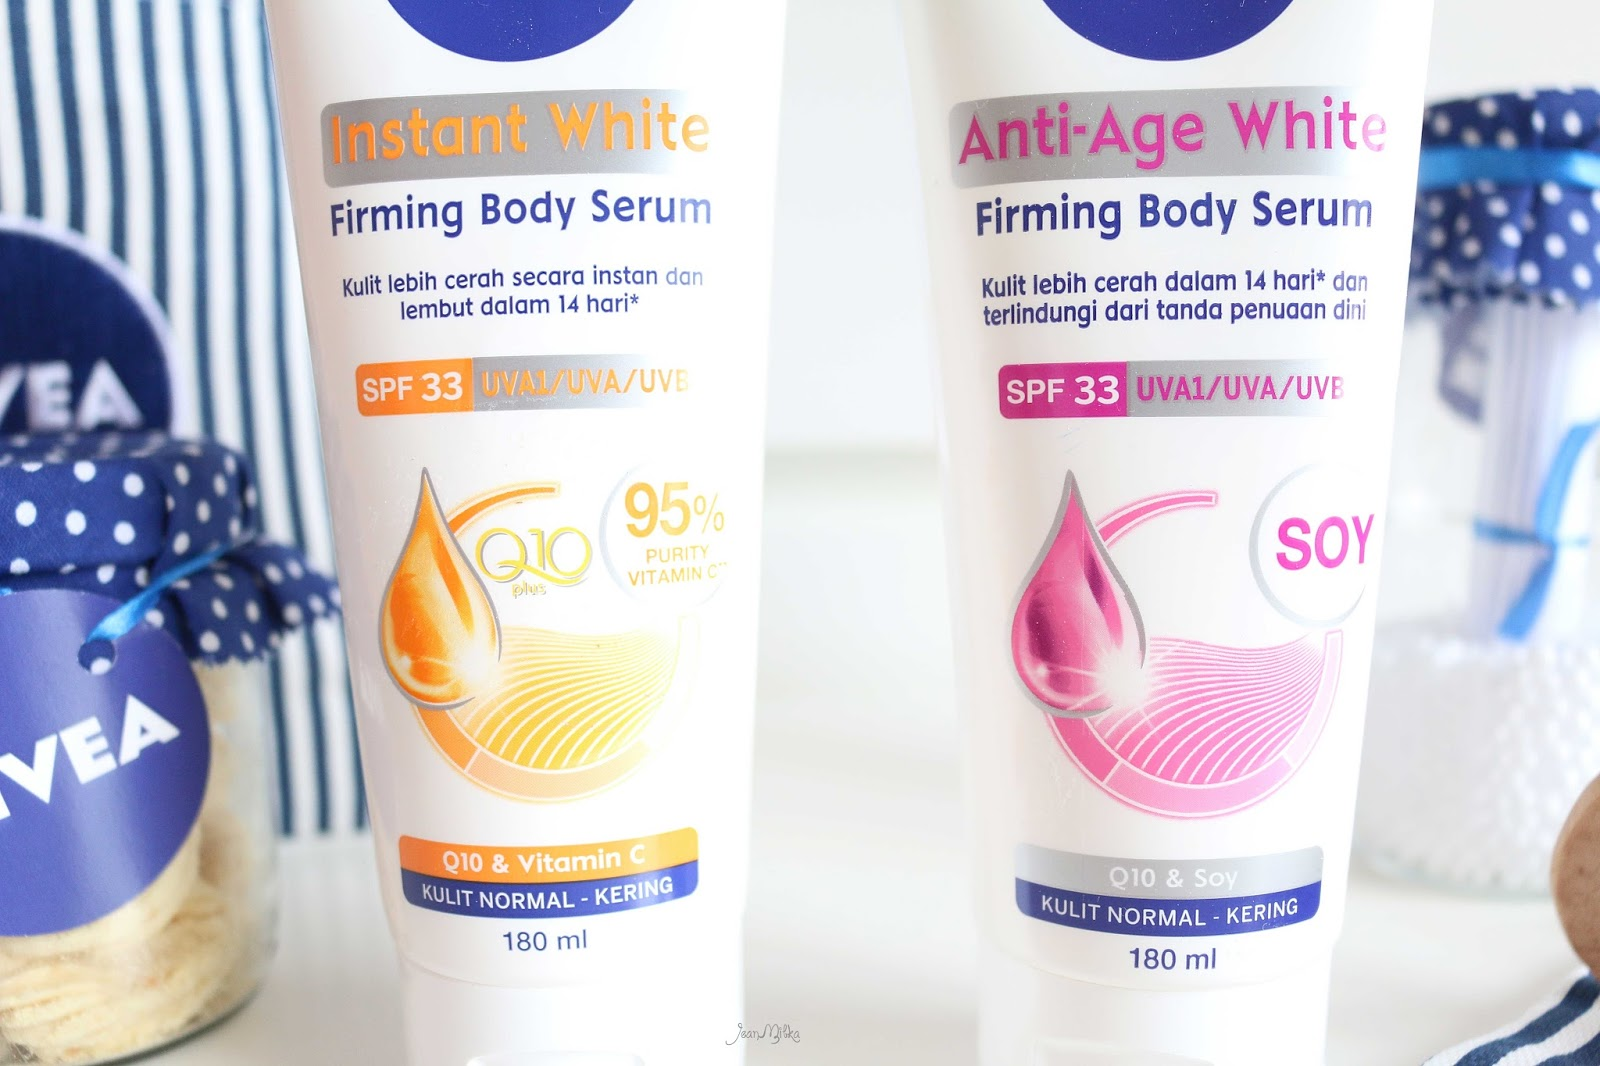 perawatan tubuh terbaik, body lotion, nivea, lotion. spf, sun protection, review beauty blogger indonesia, beauty blogger indonesia, indonesian beauty blogger, nivea indonesia, nviea instant white serum, body serum, kulit putih